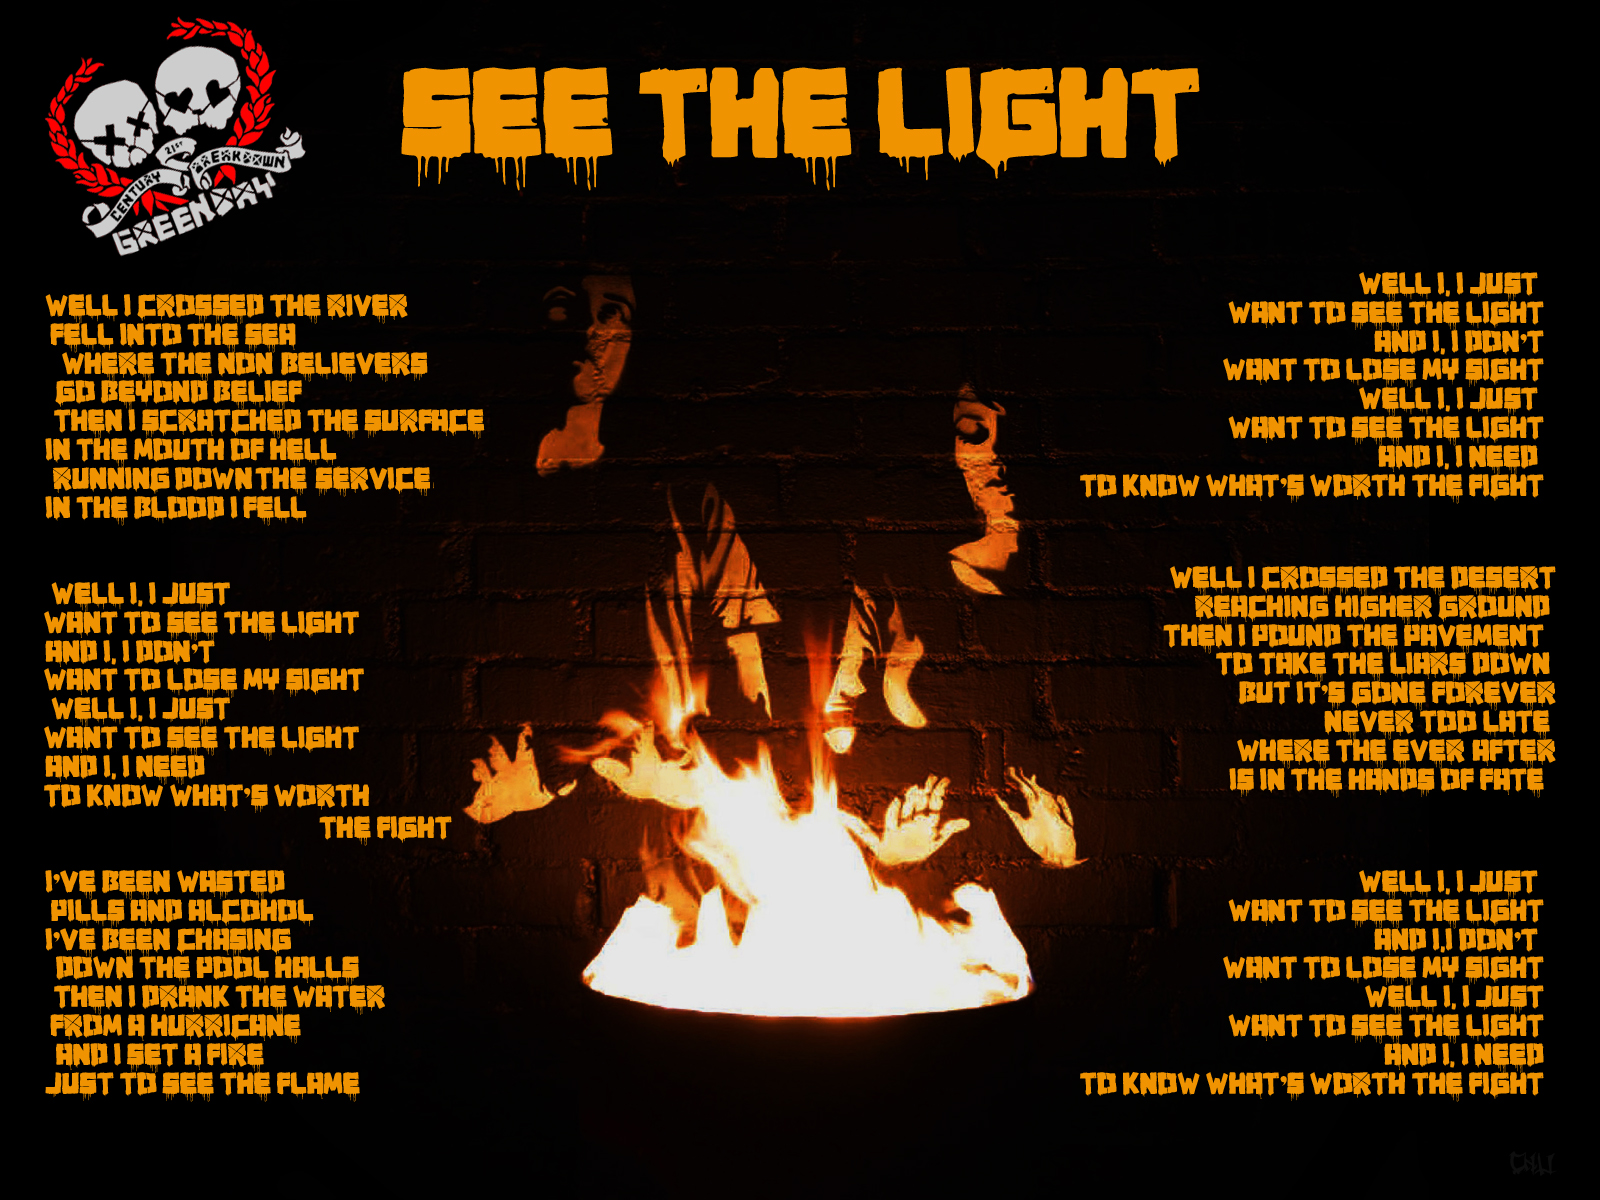 the light lyrics